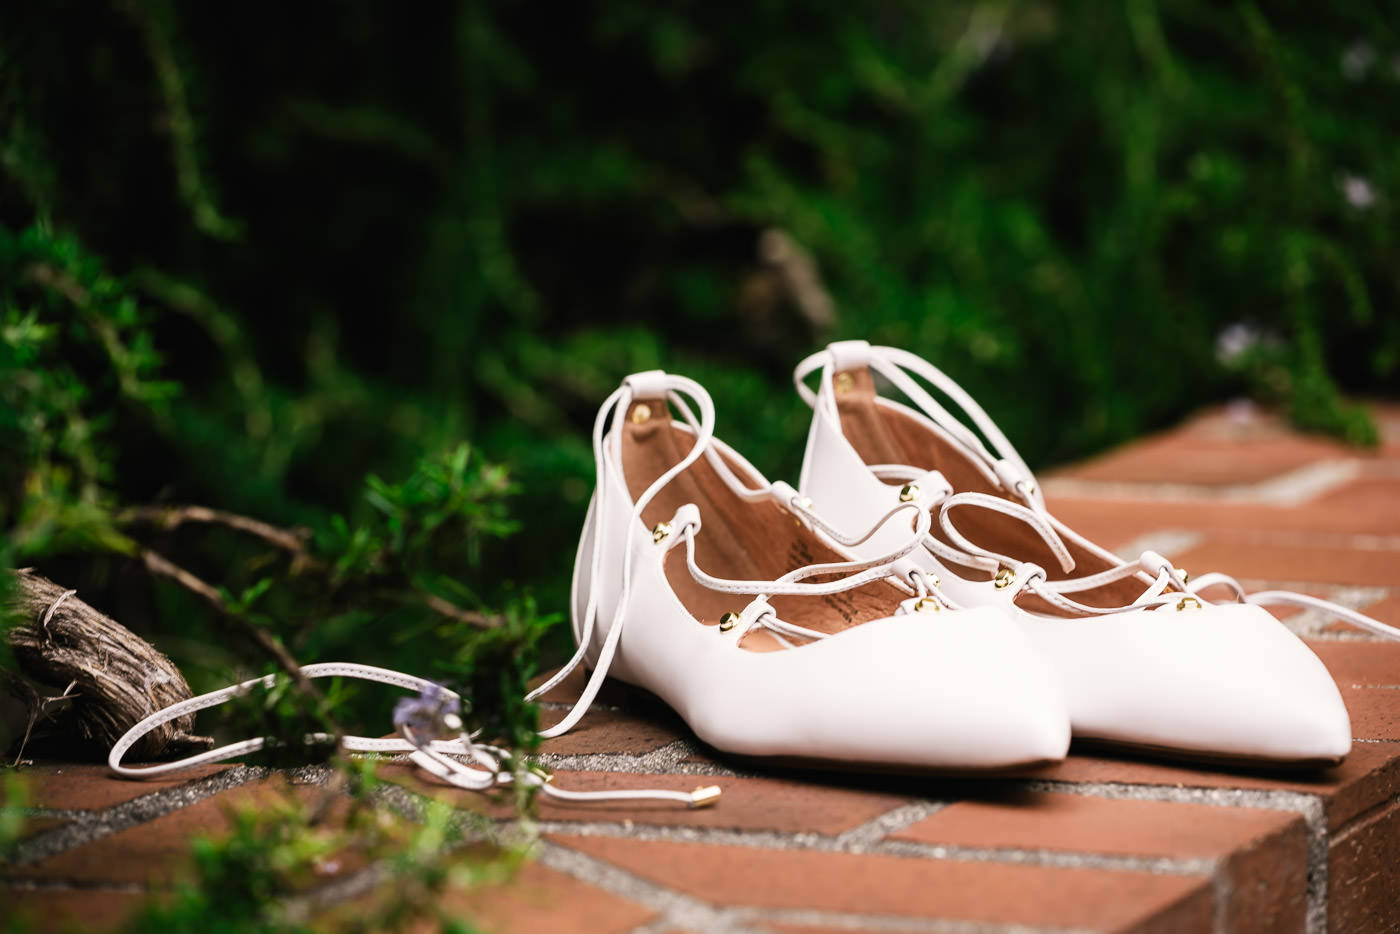 Bride's white shoes sit on a brick wall.